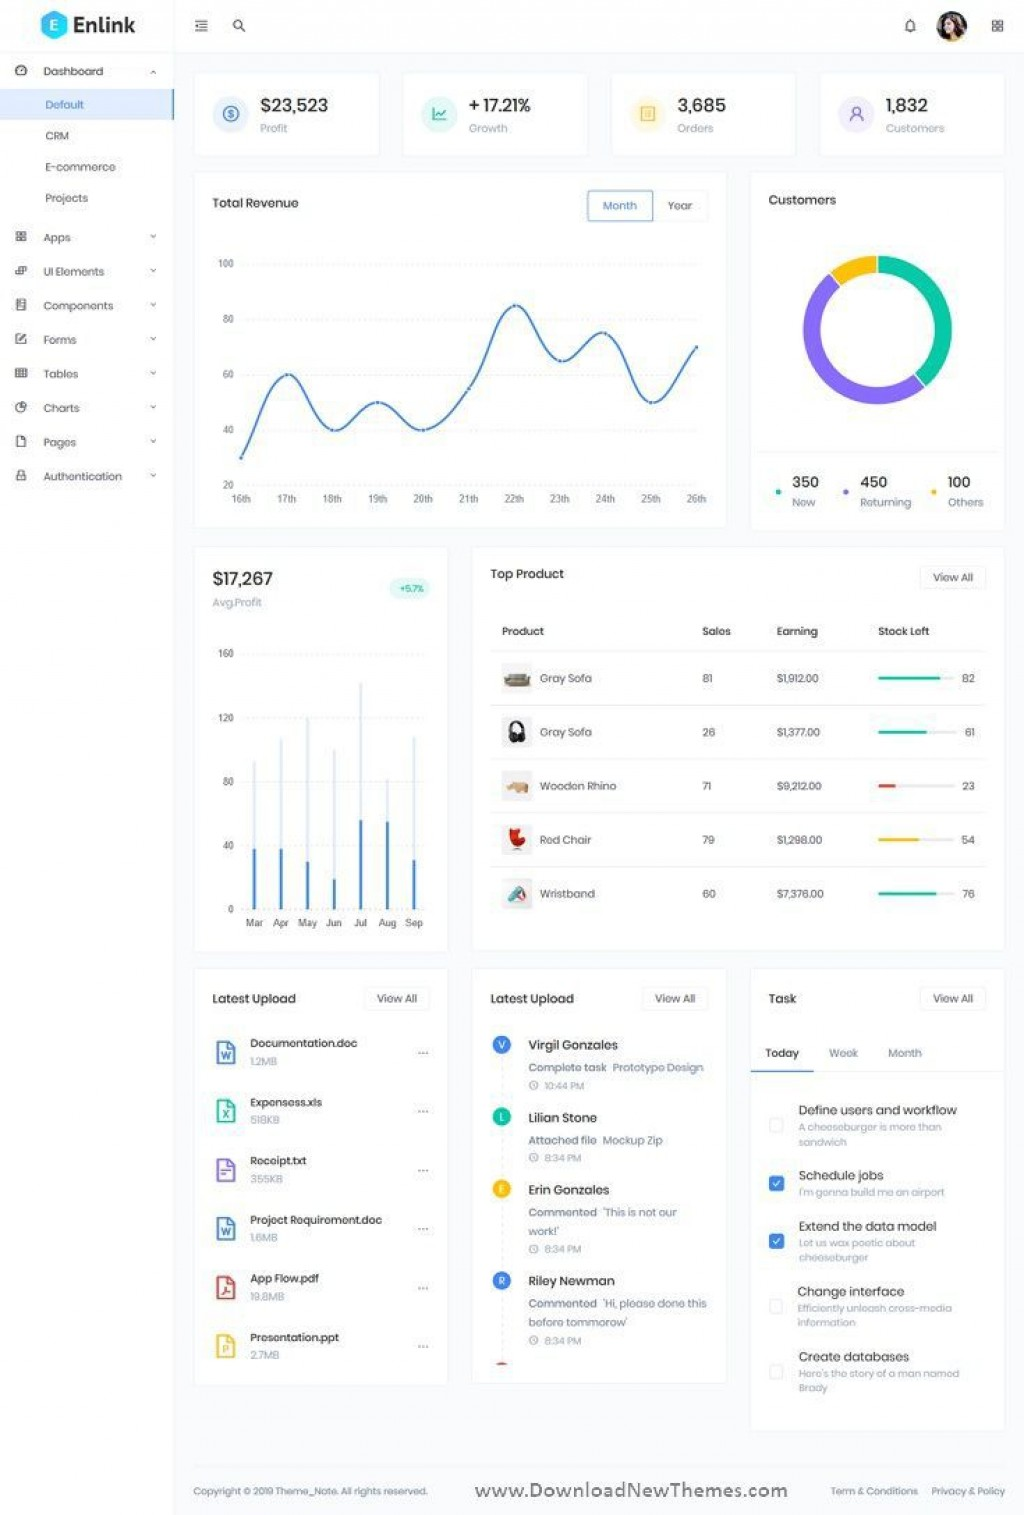 002 Awful Project Management Bootstrap Template Free Download High Resolution Large